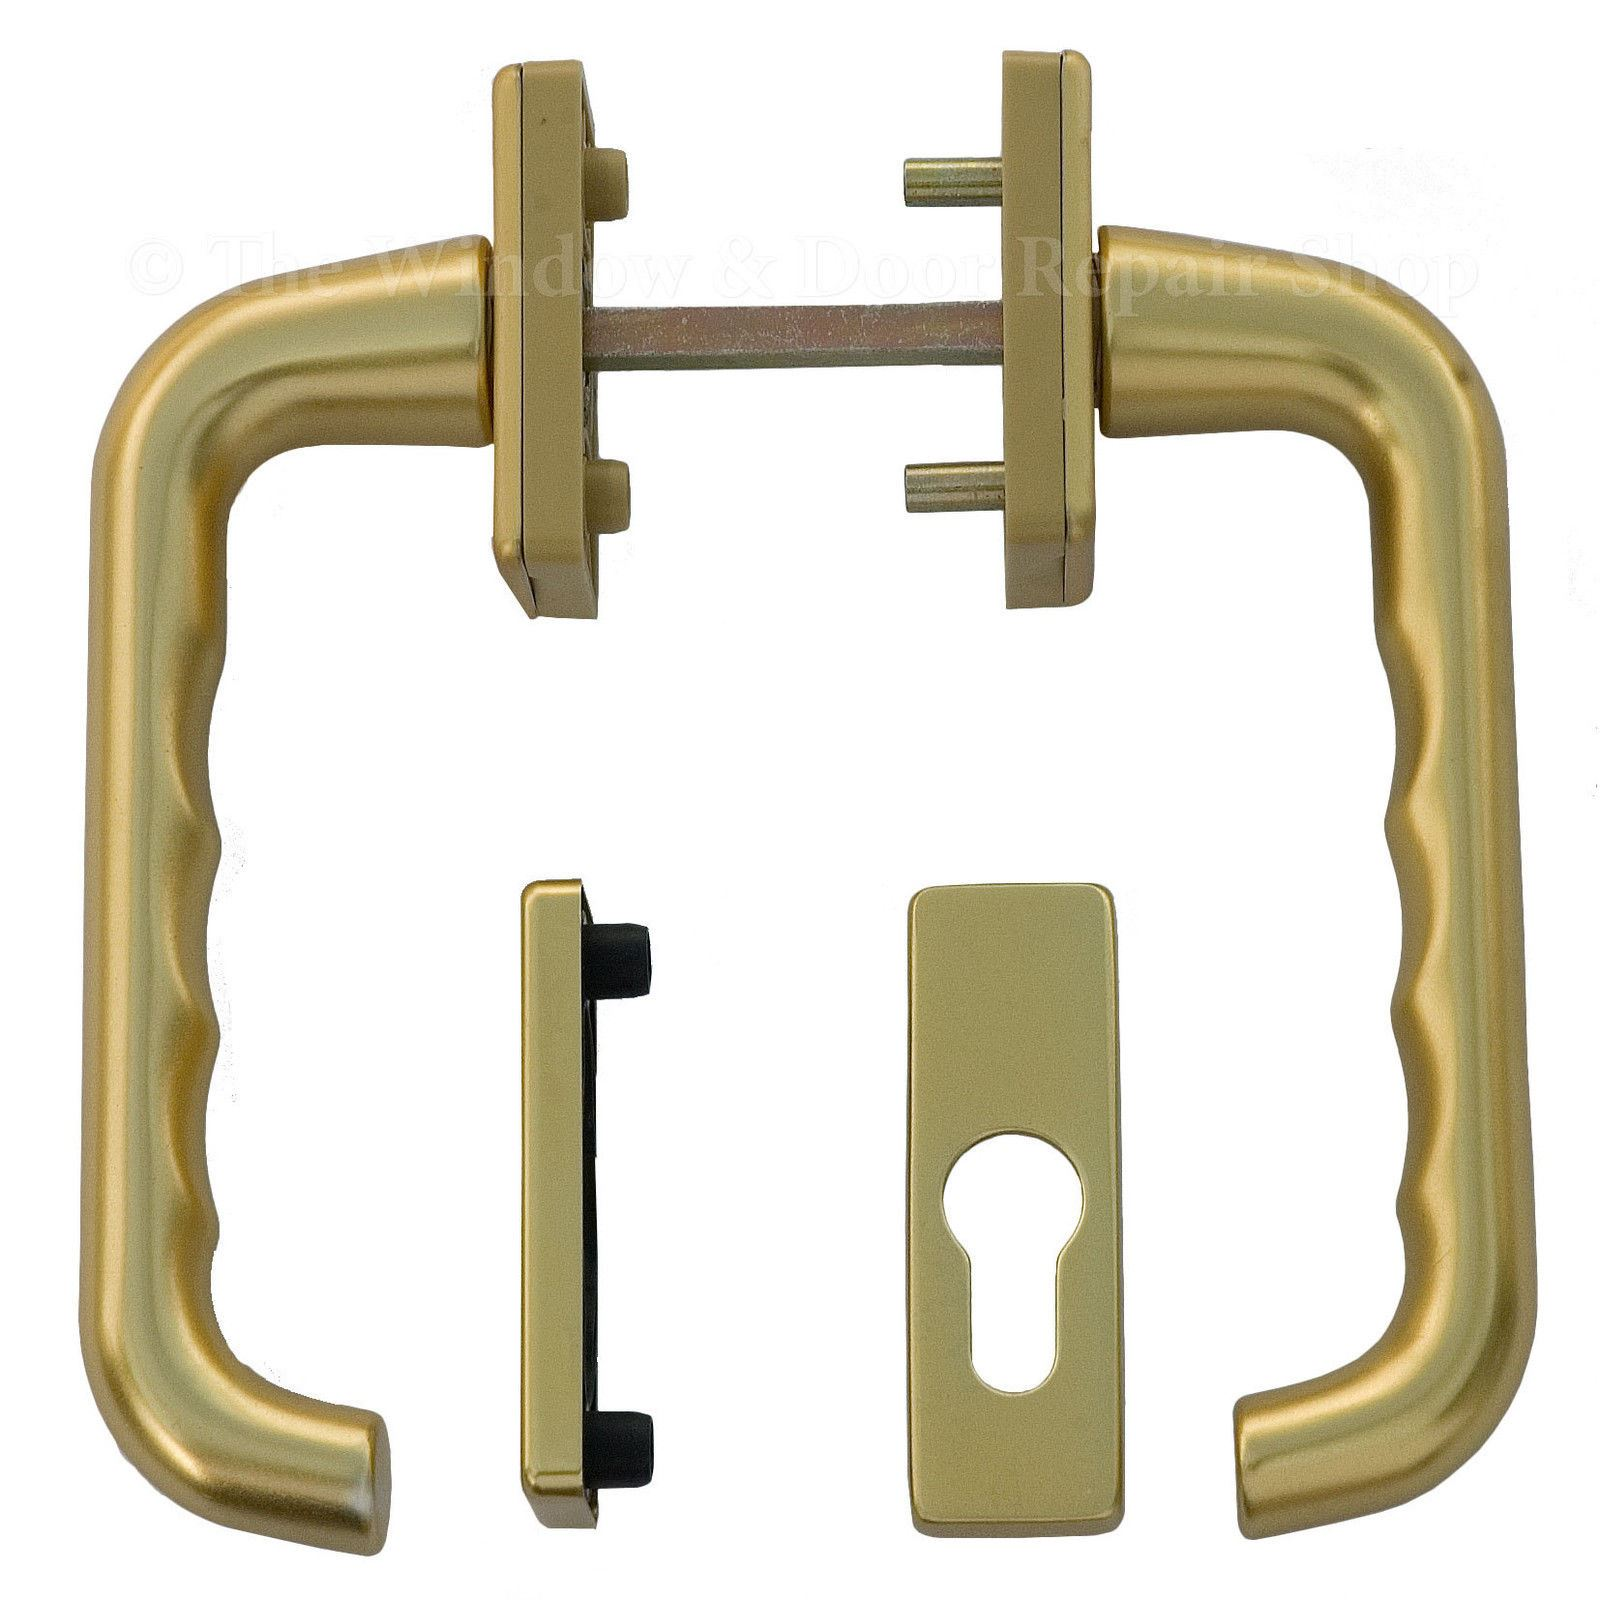 Window Tilt Latch Slide L307 : Tilt slide patio door handle set for upvc doors hoppe